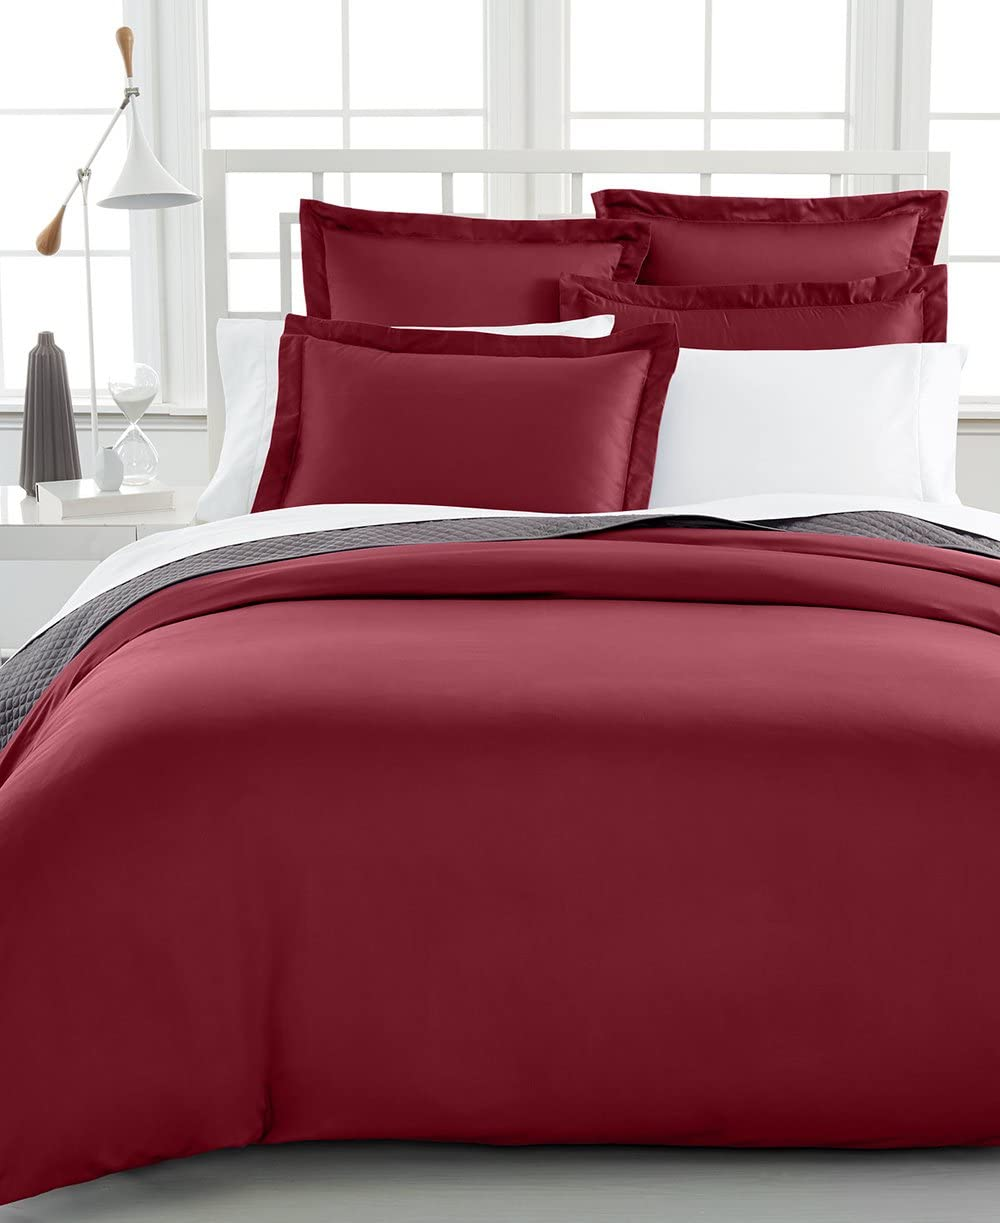 Bedding Charter Club Damask Stripe Full Queen Duvet Cover 100 Supima Cotton 550 Thread Count Home Kitchen